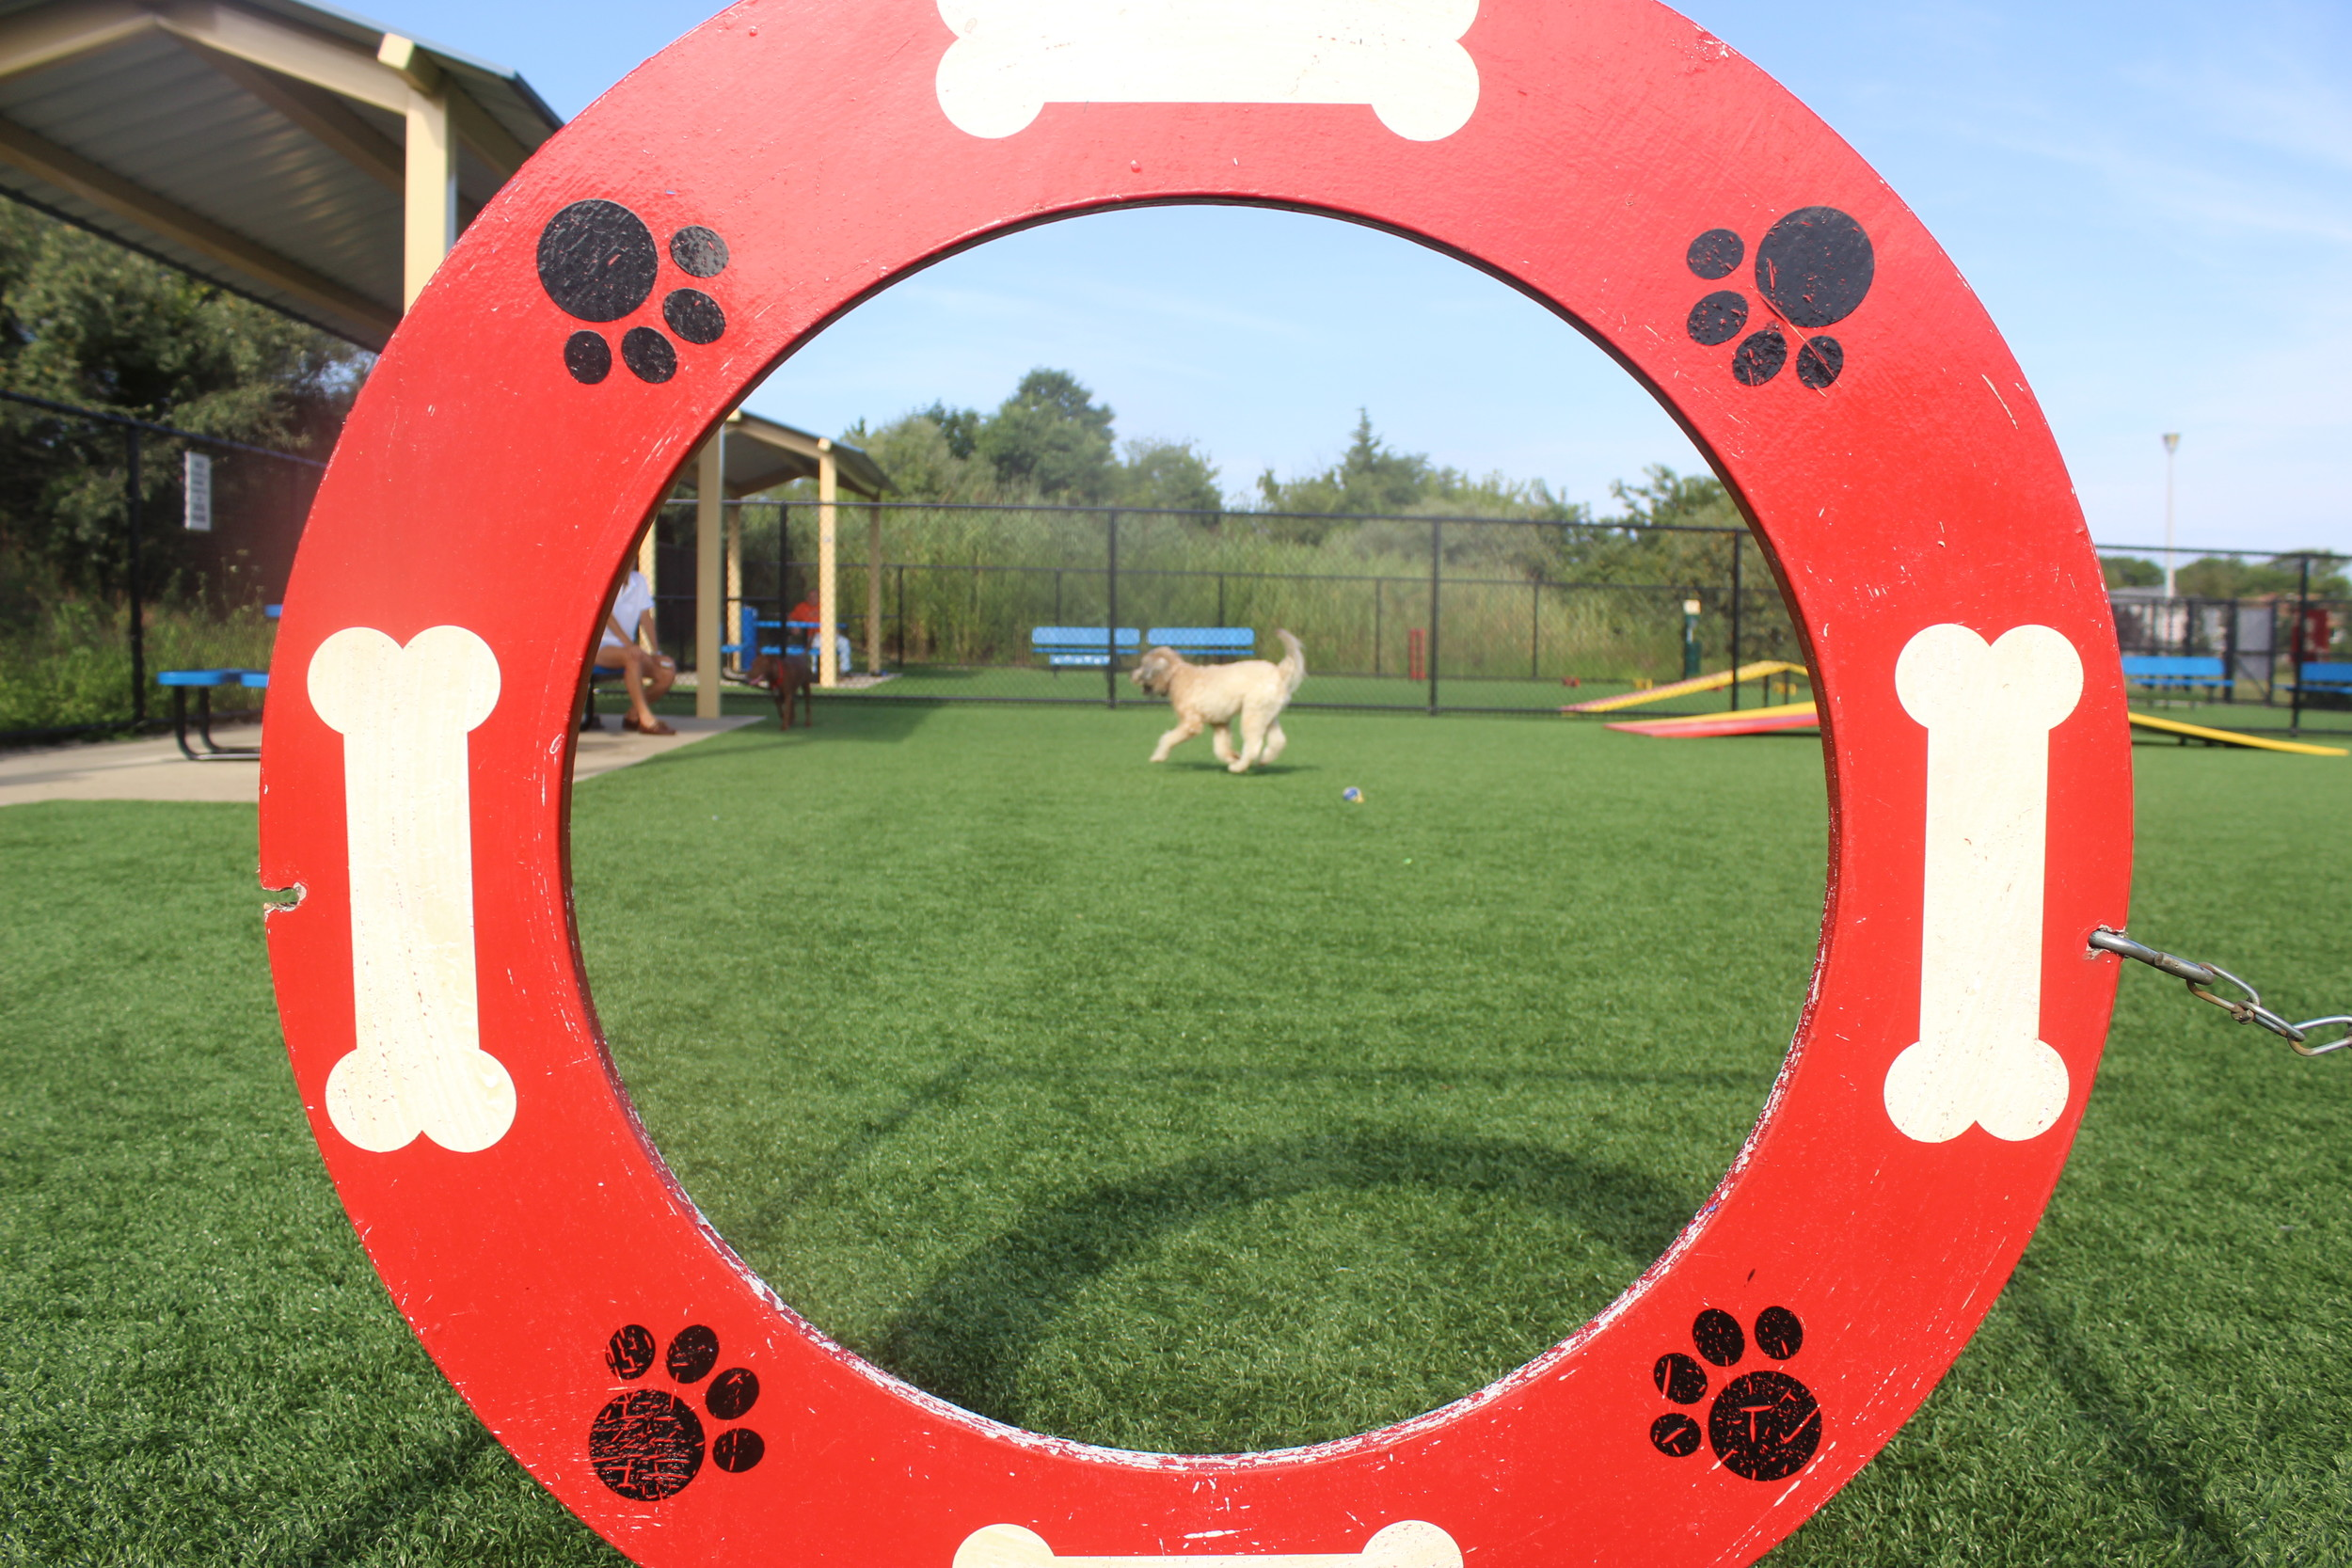 The Town of Hempstead dog park at Newbridge Road Park in Bellmore features obstacles, like the pictured hoop, on which dogs can jump through.